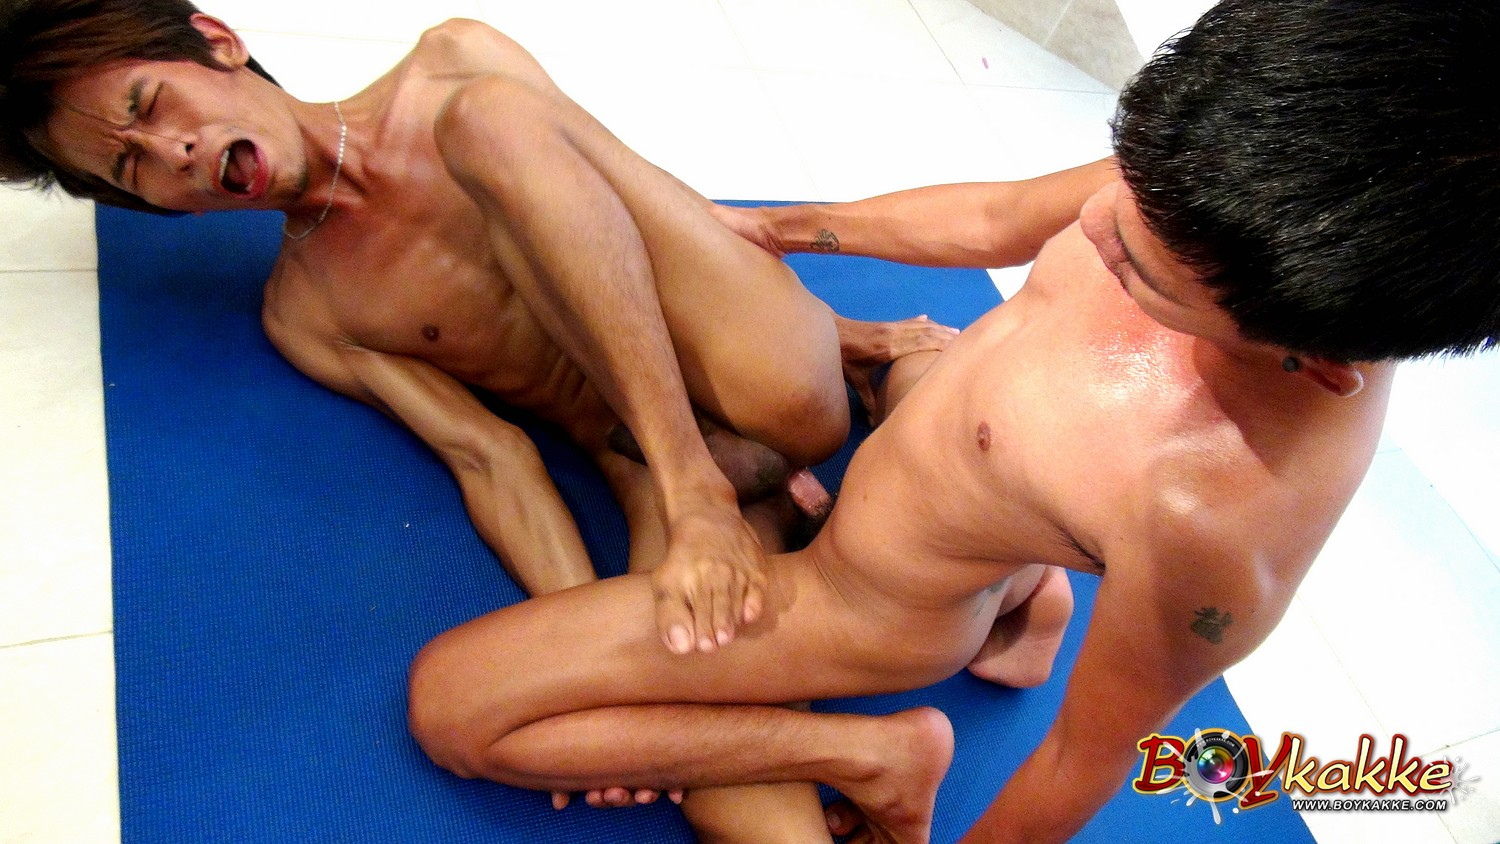 Horny gay wrestling